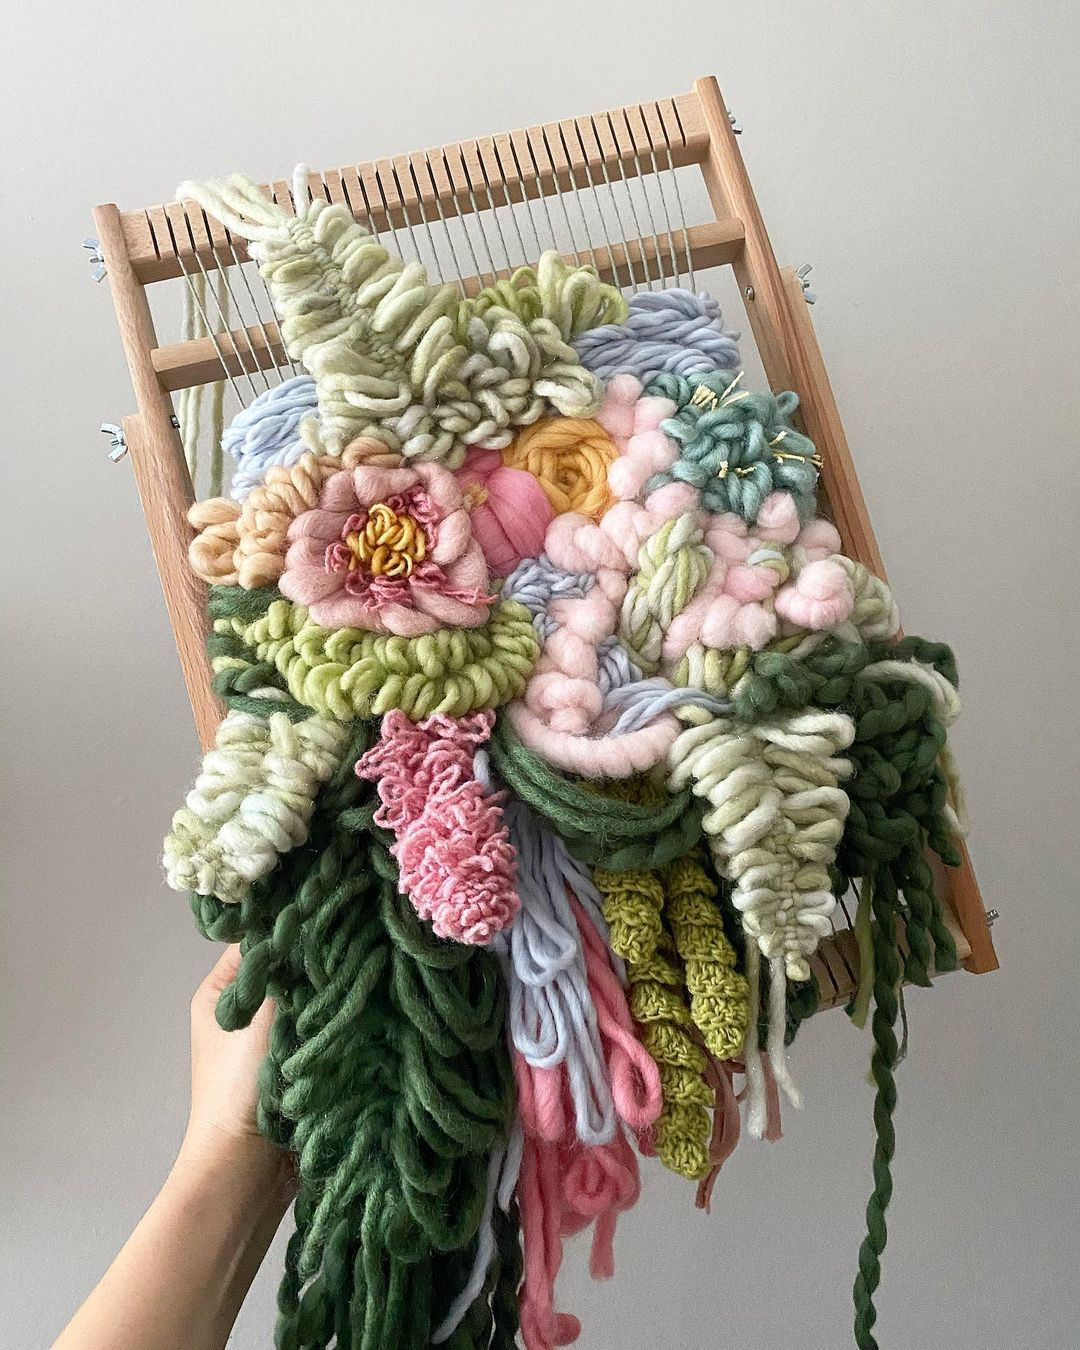 These Woven Wall Hangings Are Bursting With a Beautiful Bounty of Blooms